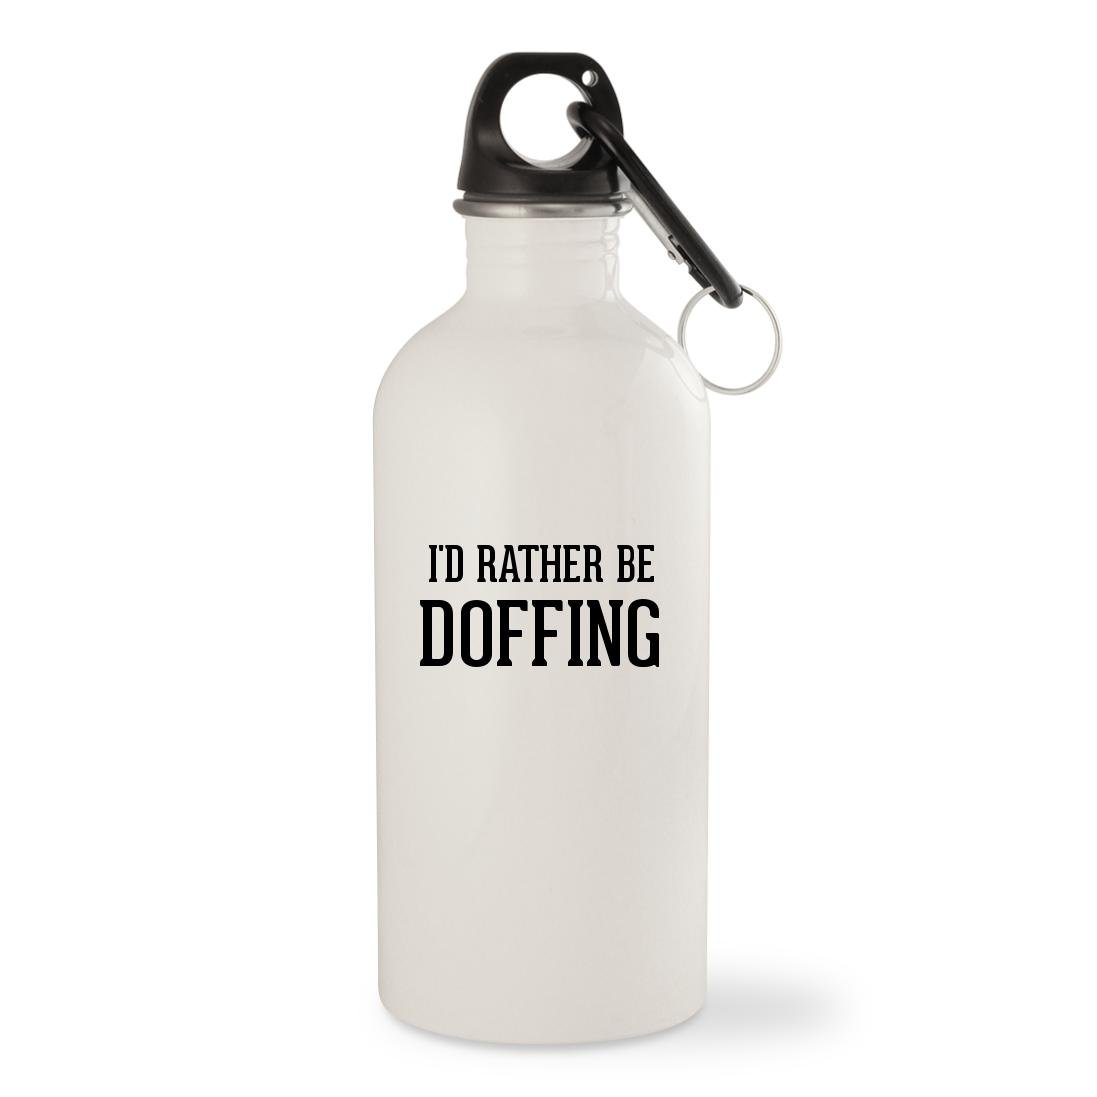 I'd Rather Be DOFFING - White 20oz Stainless Steel Water Bottle with Carabiner